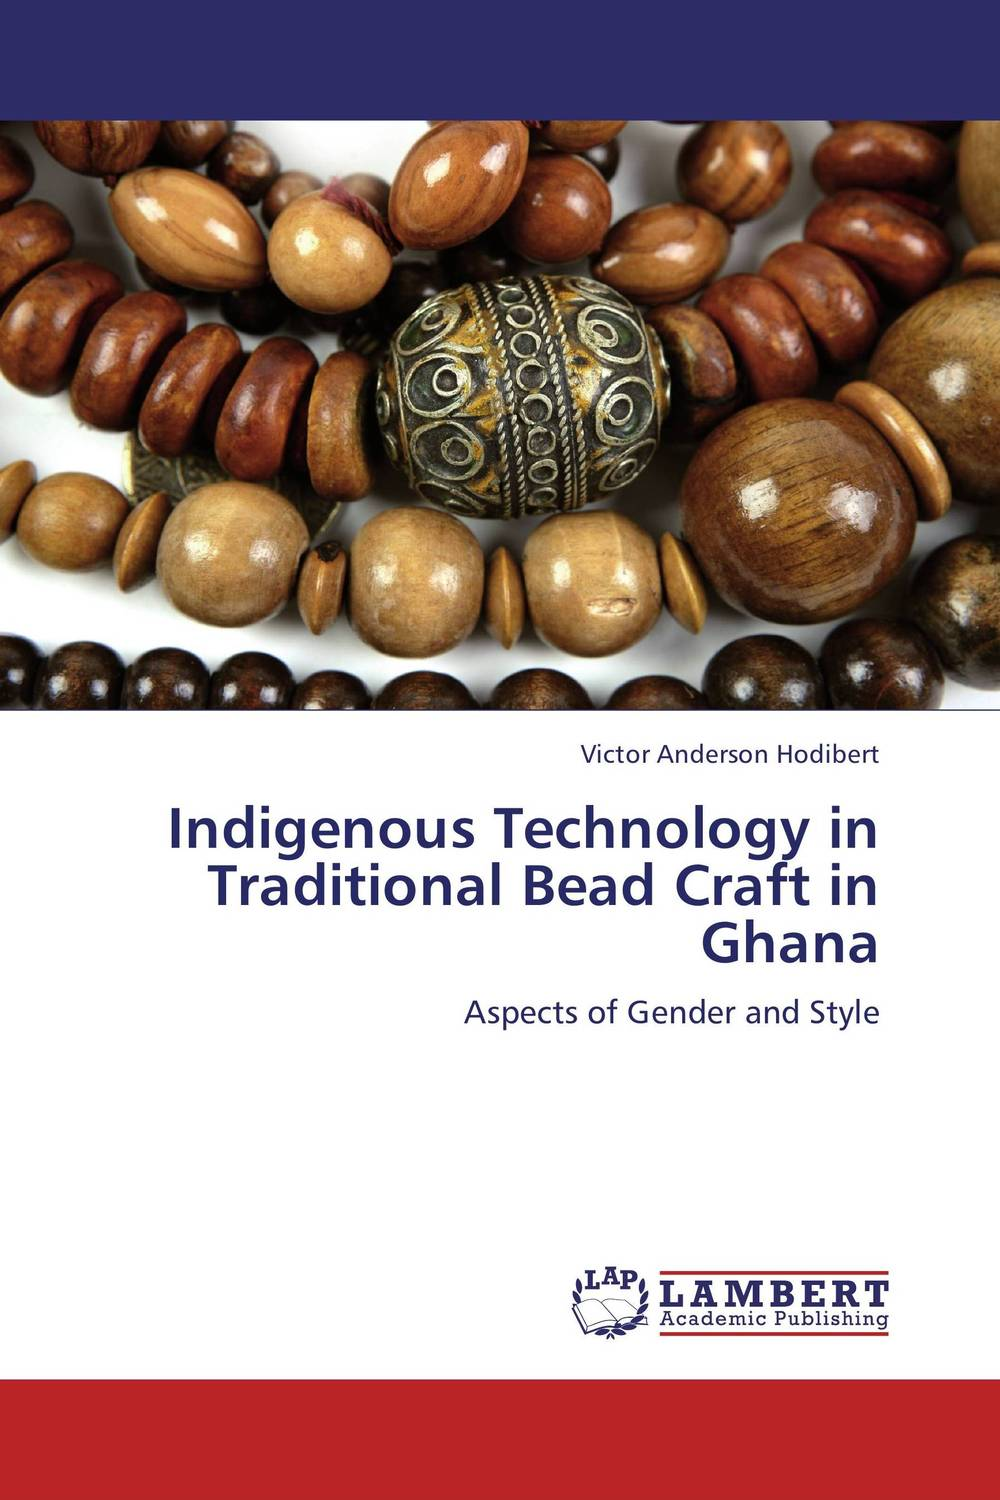 Indigenous Technology in Traditional Bead Craft in Ghana батут 12ft 3 66м с защитной сеткой внутрь б л gb10200 12ft